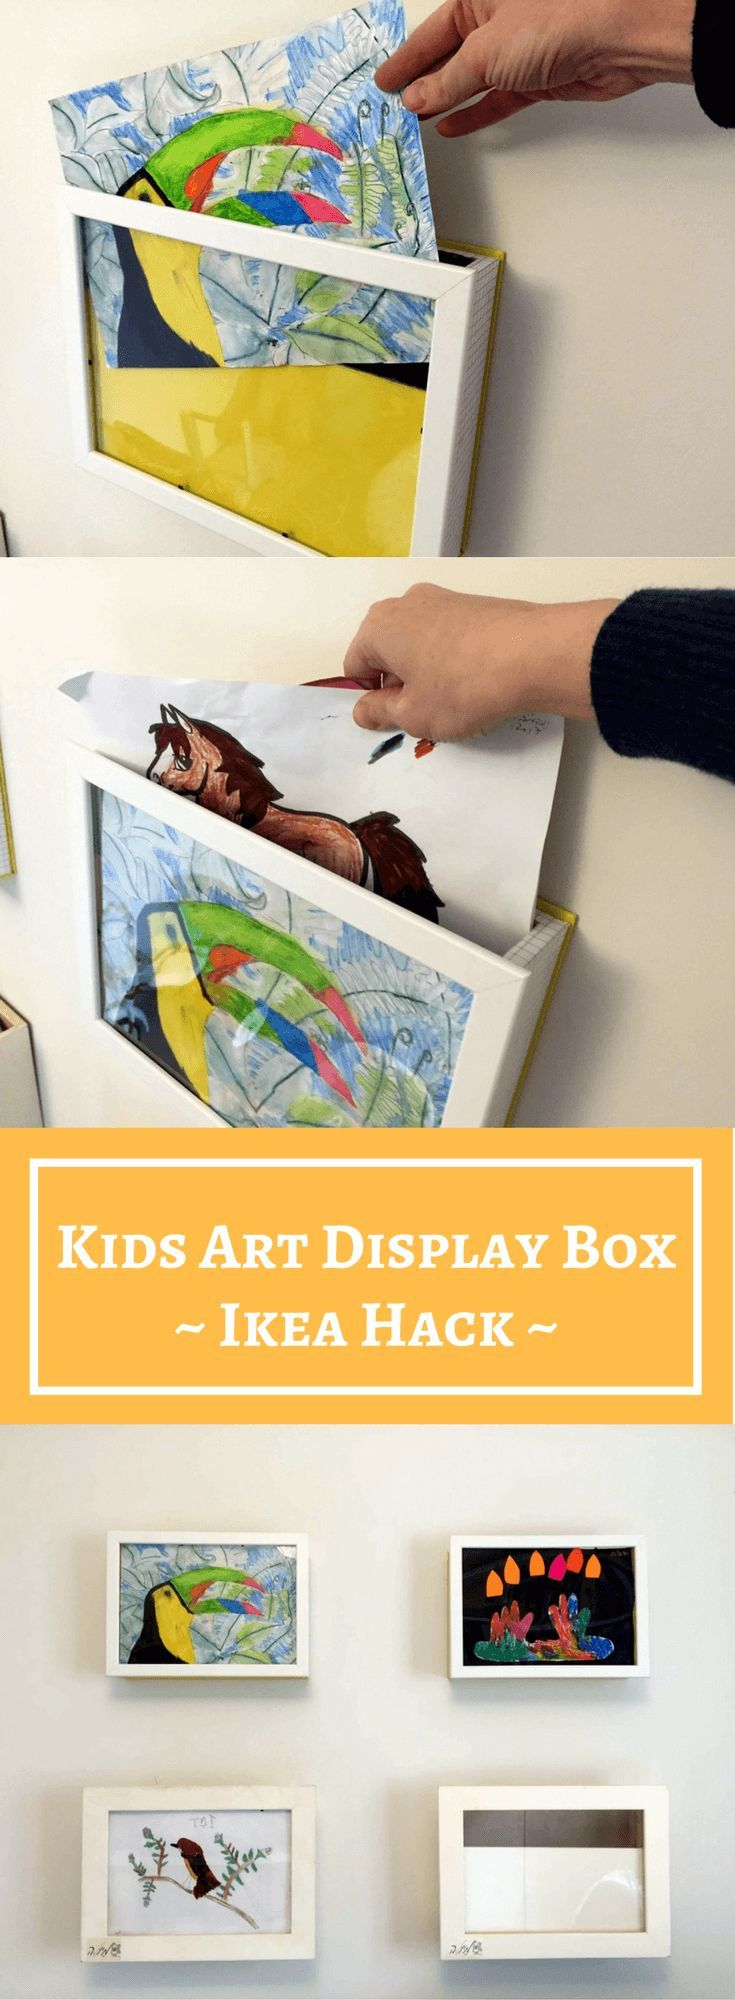 Kids art display box: 10 min hack to store & show your kids art #kidsbedroomsandthings